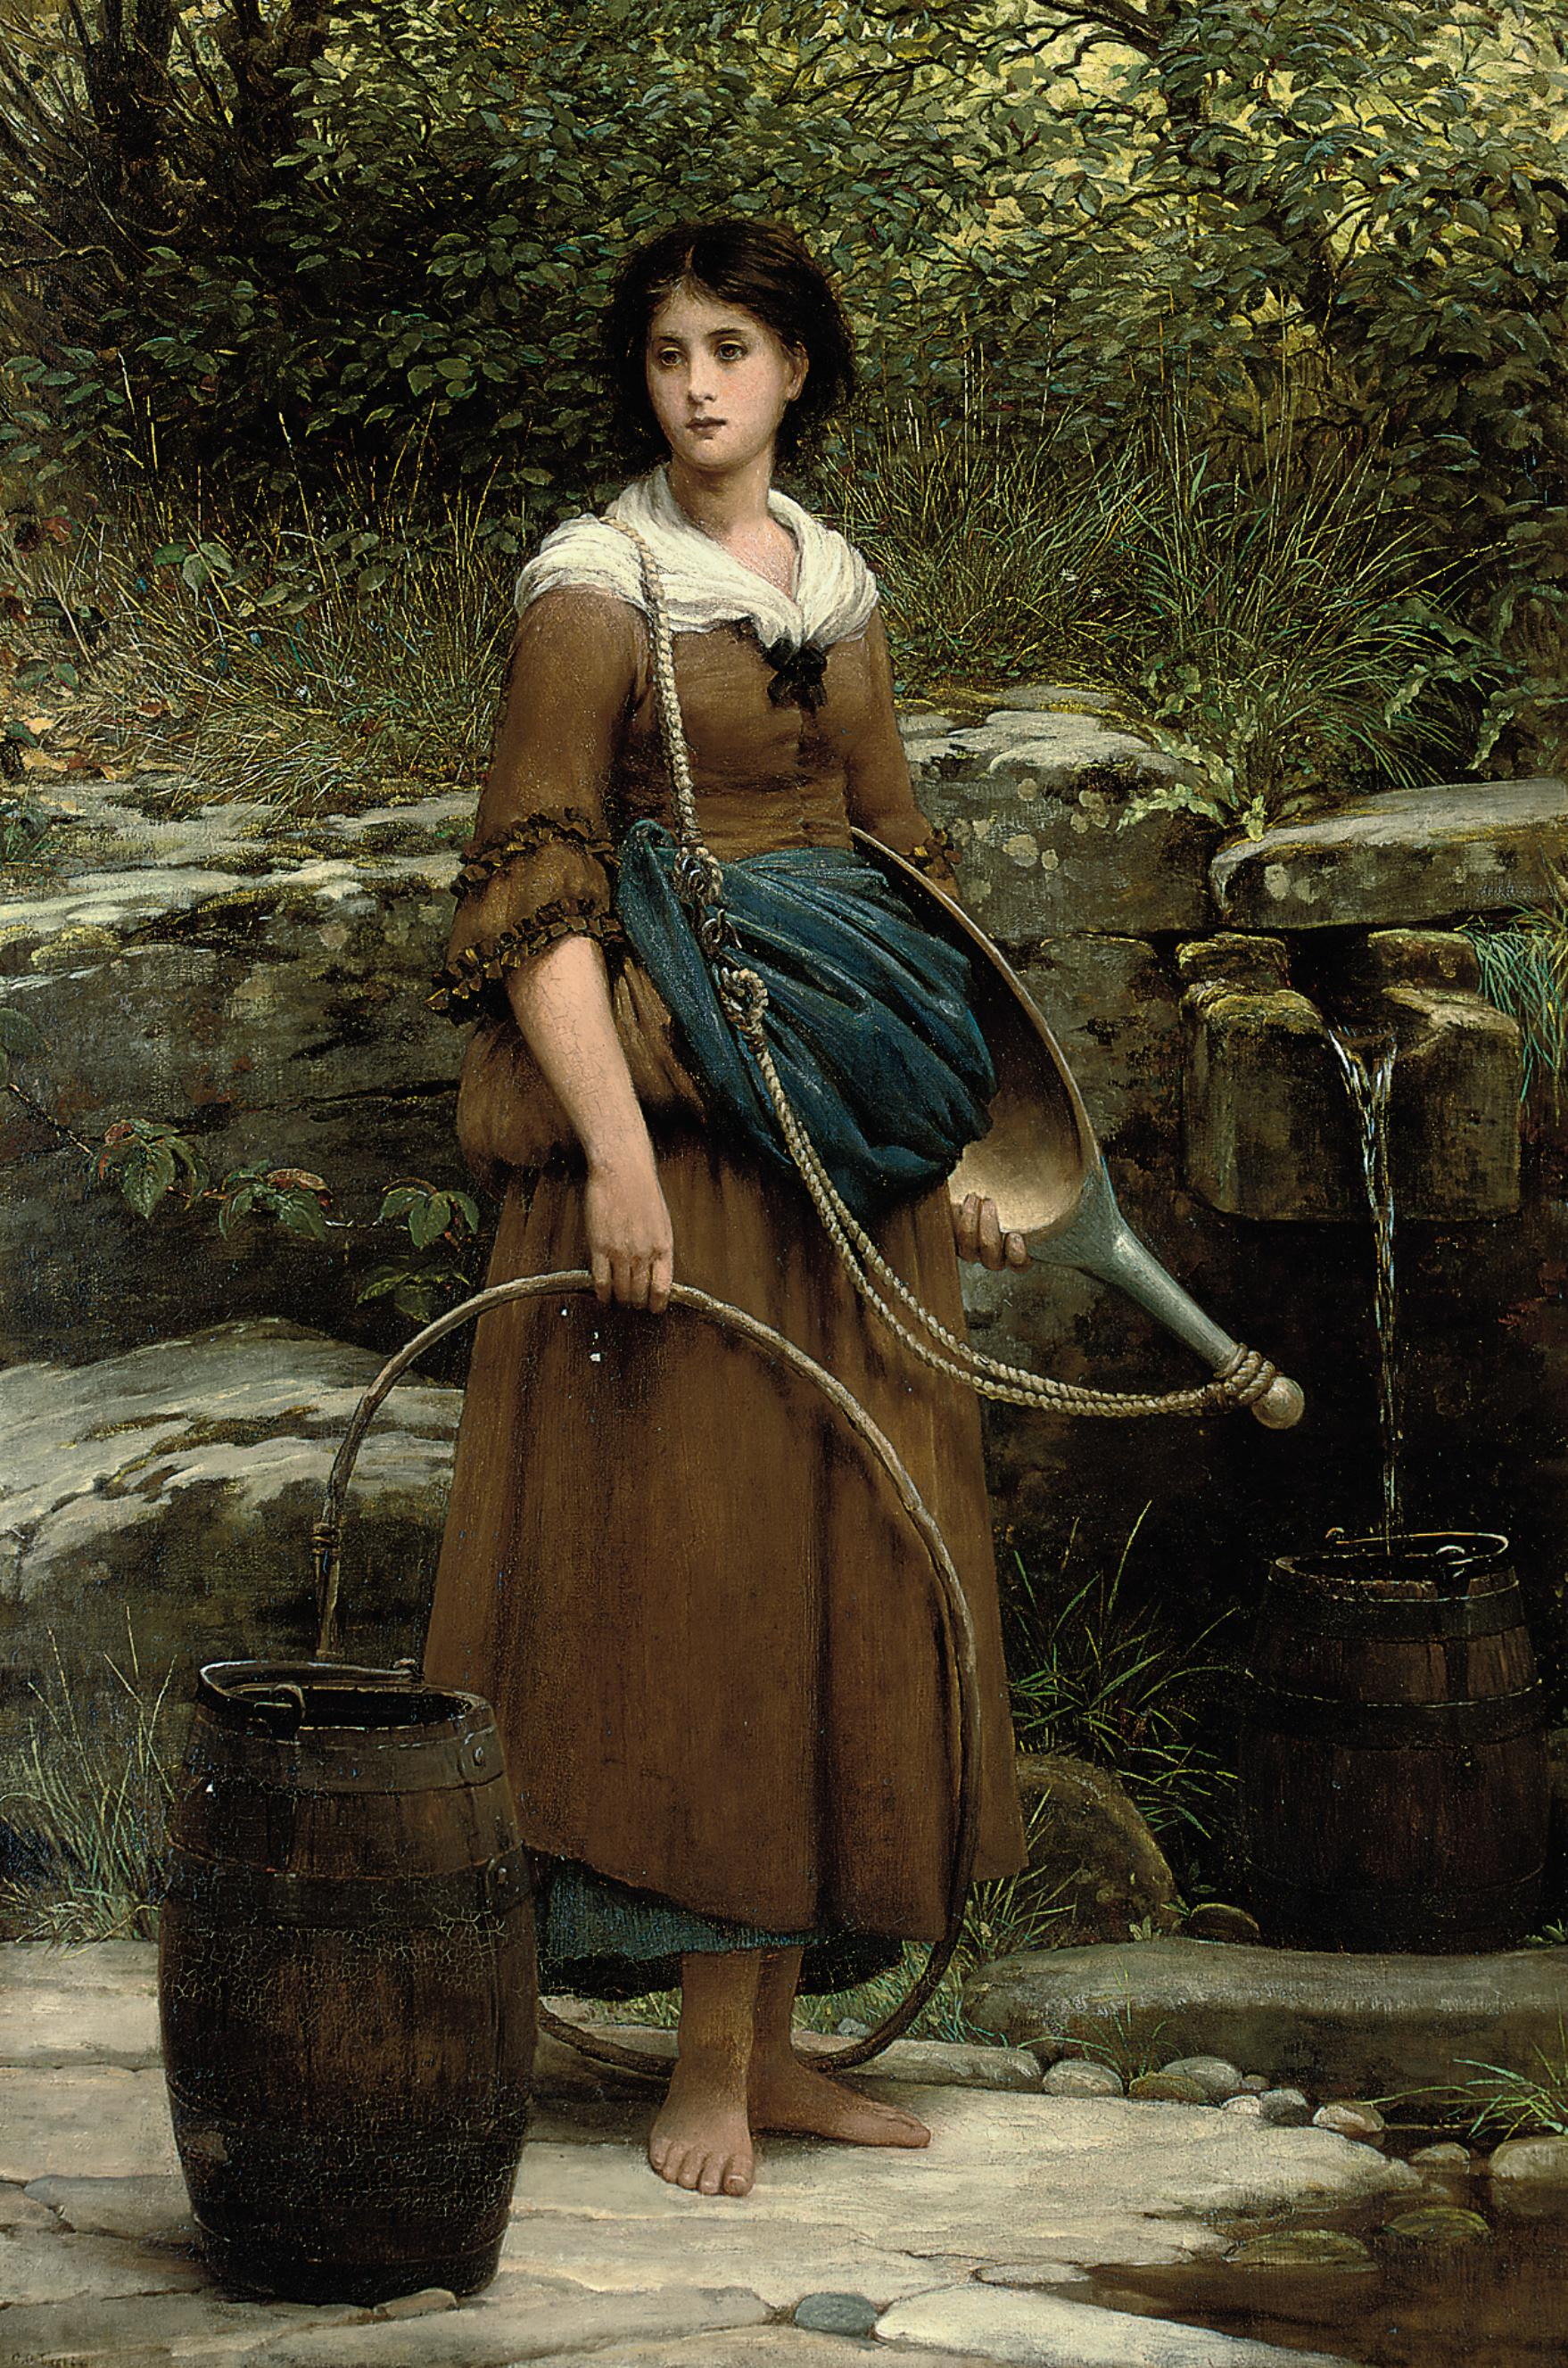 The Nut Brown Maid